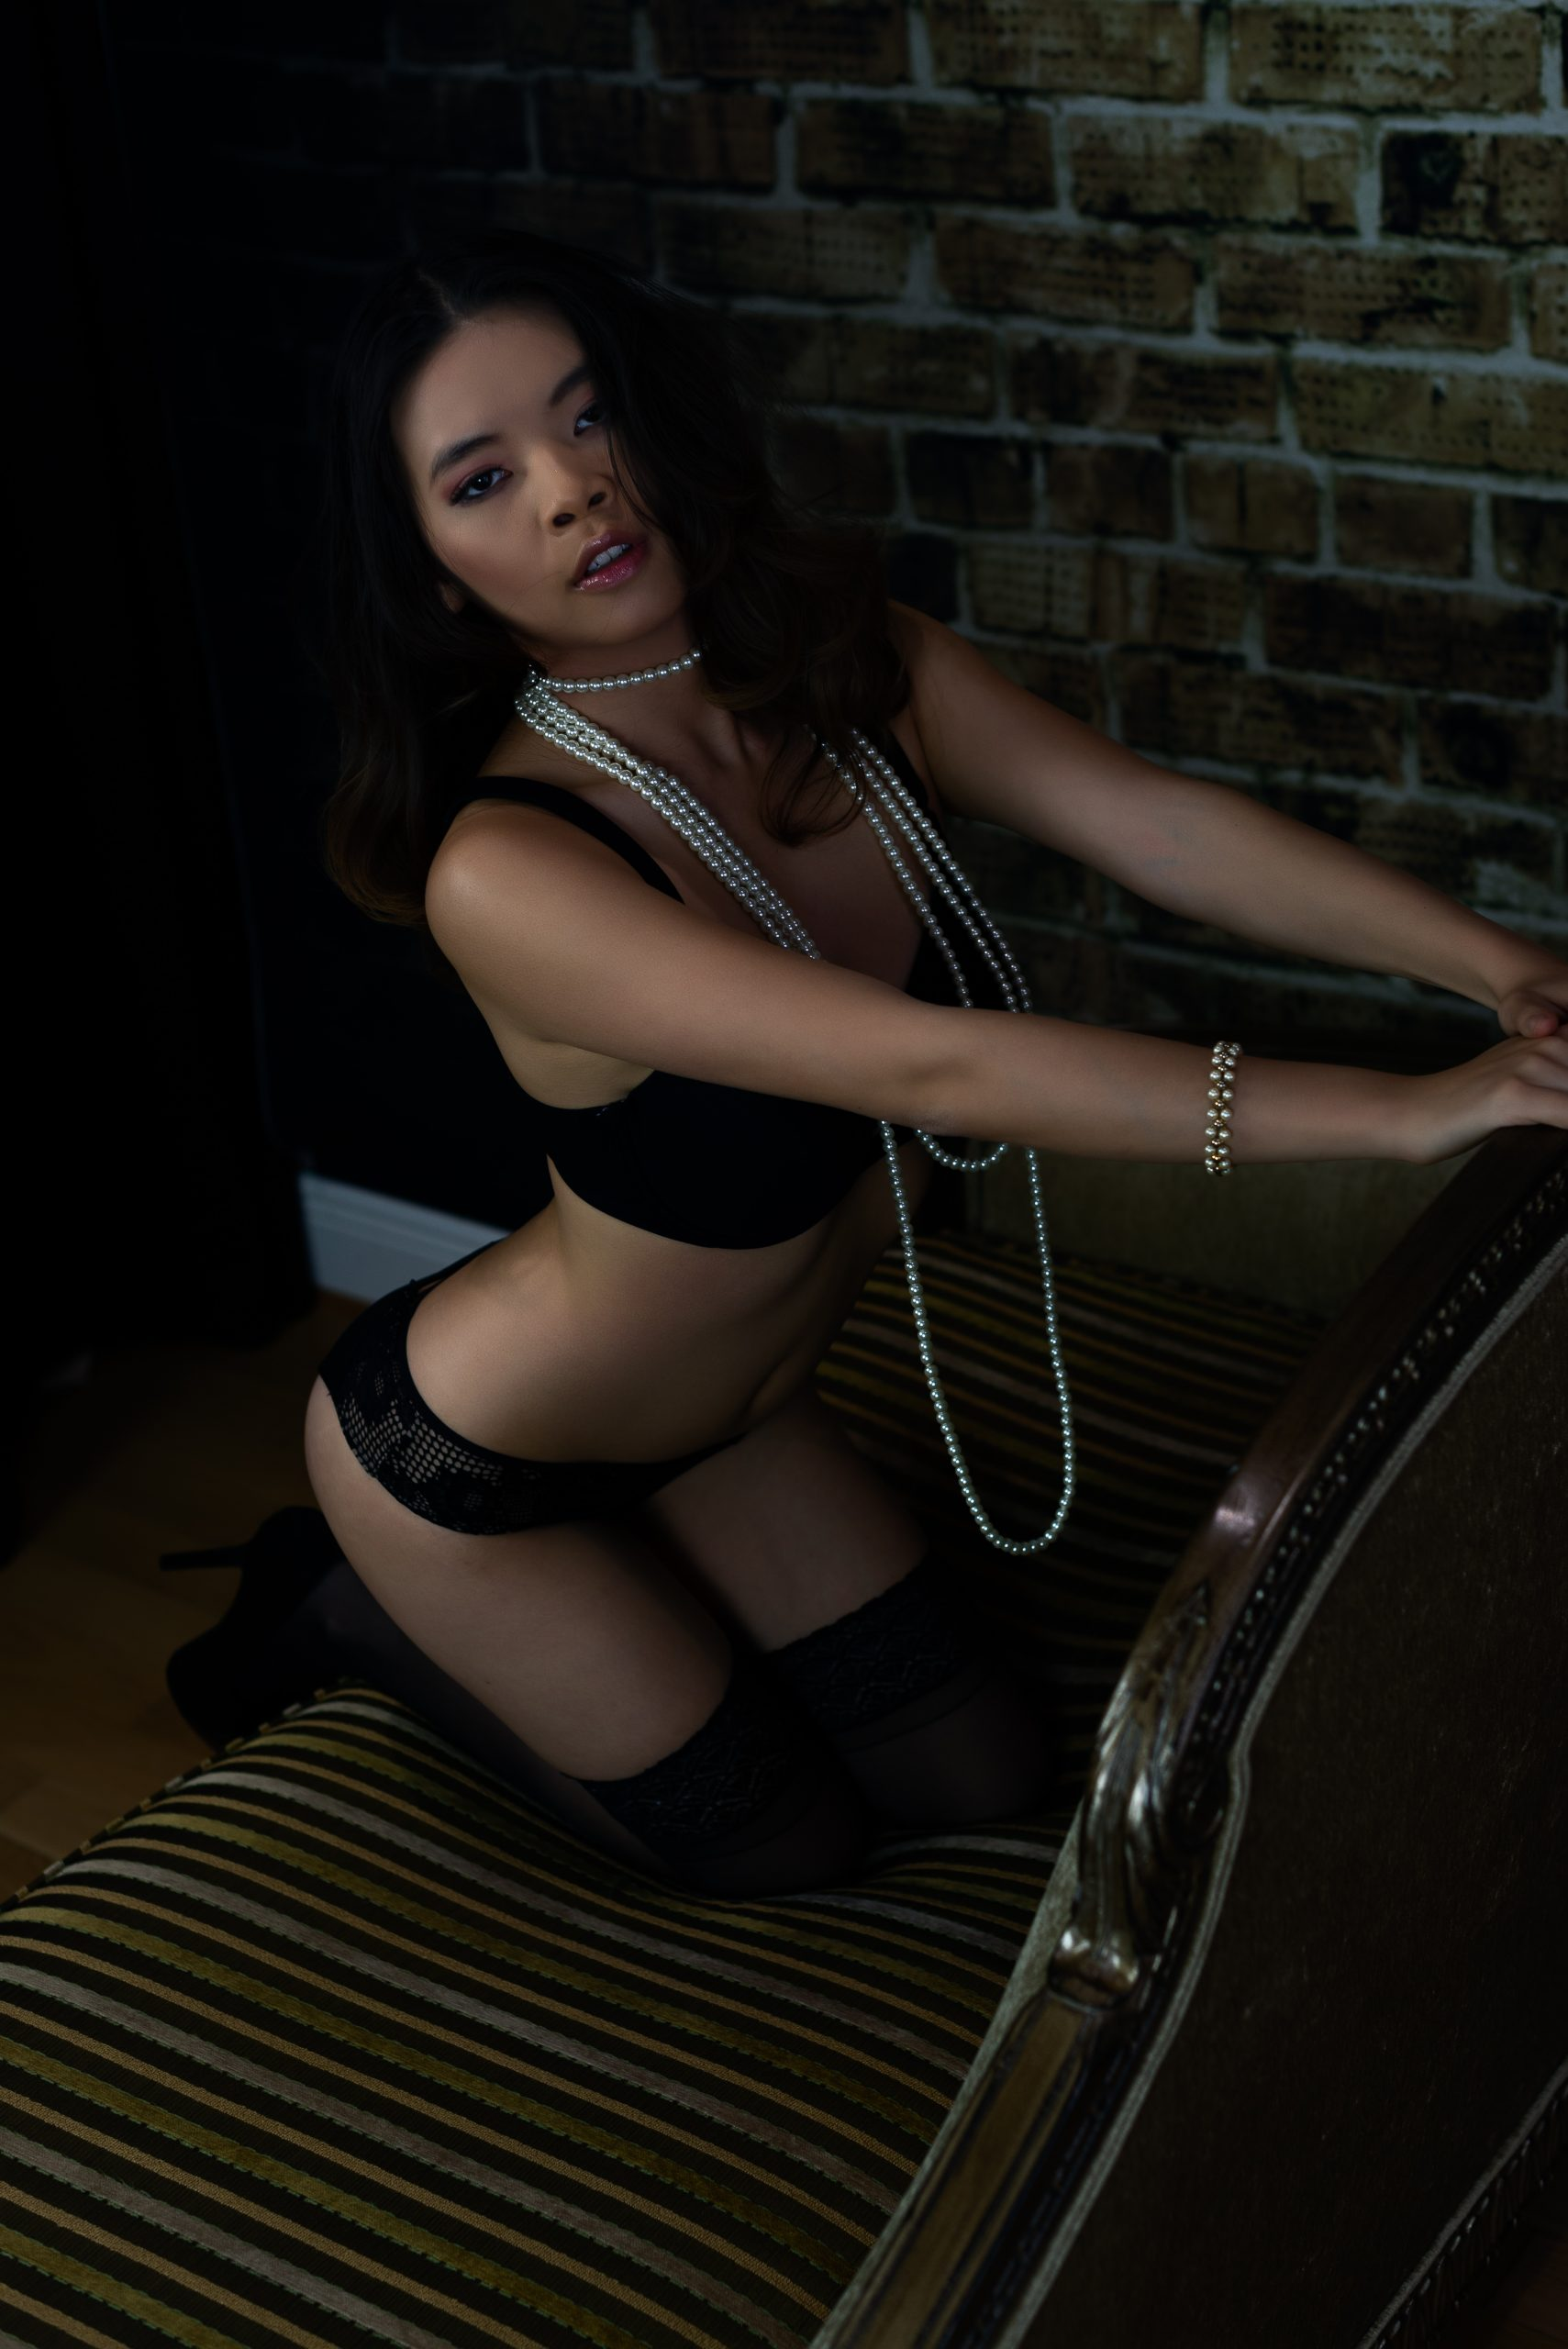 Houston boudoir studio Valentine's Day Quickie at Heights Boudoir the best Valentine's Day Special and the gift he wants!-